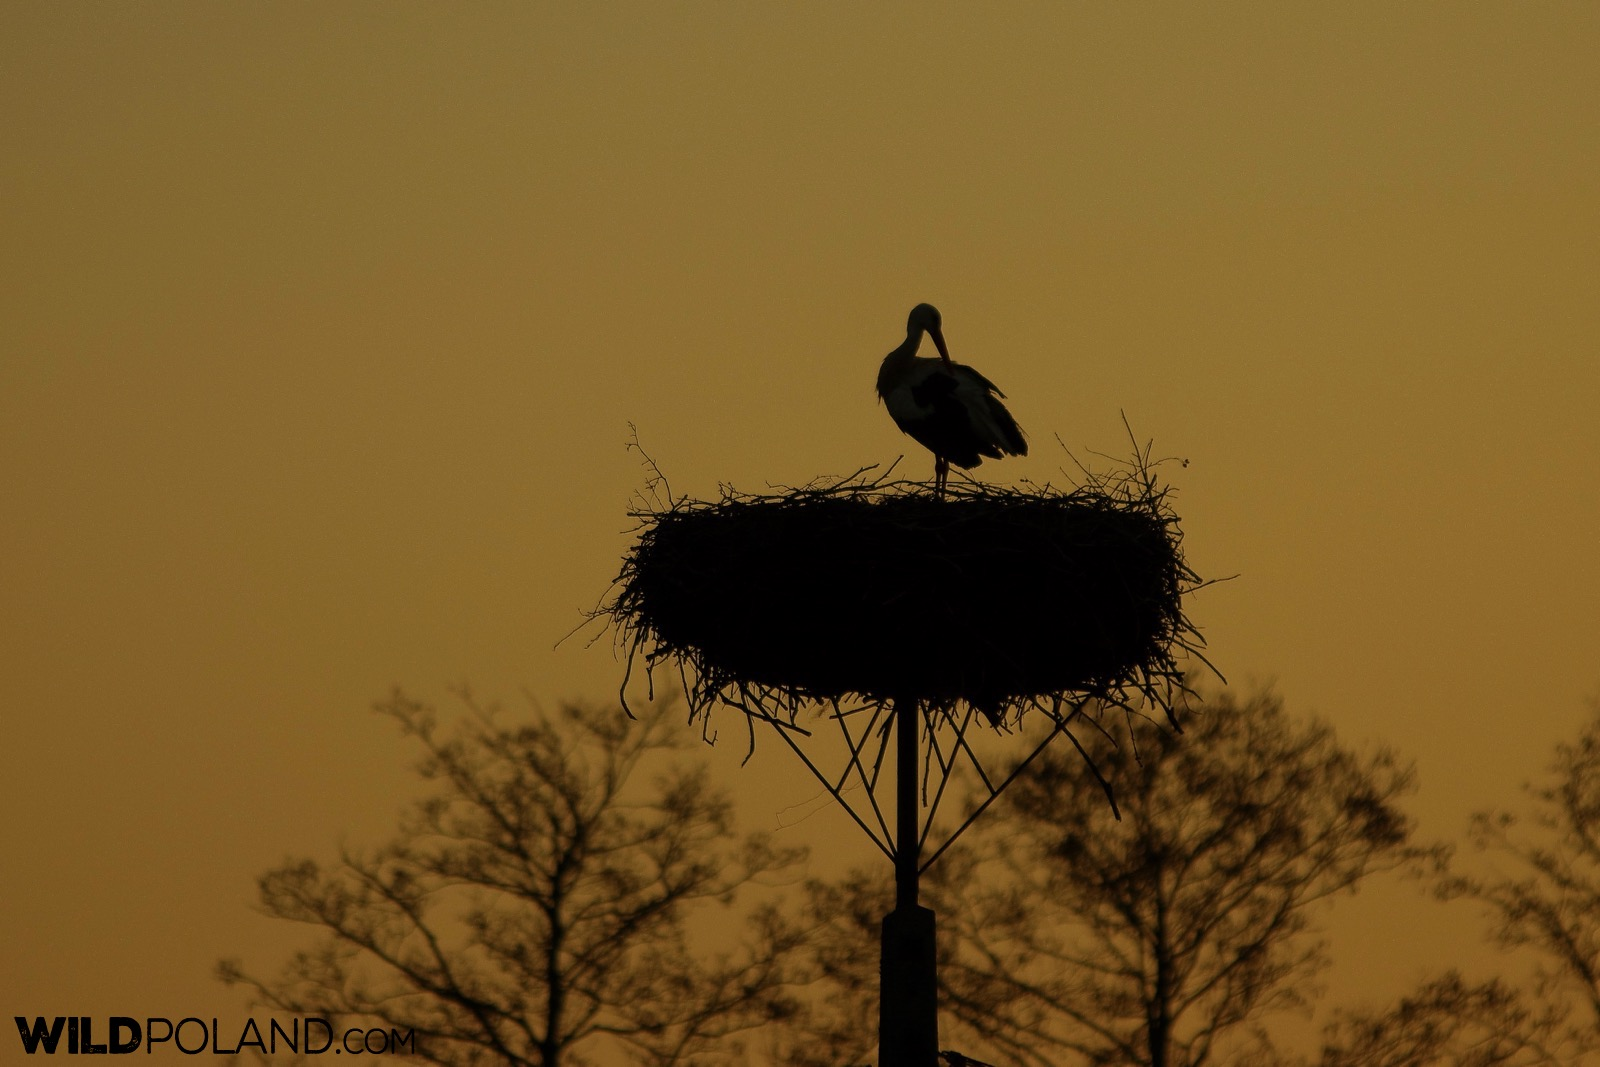 White stork at its nest against the first light of a rising sun, photo by Andrzej Petryna